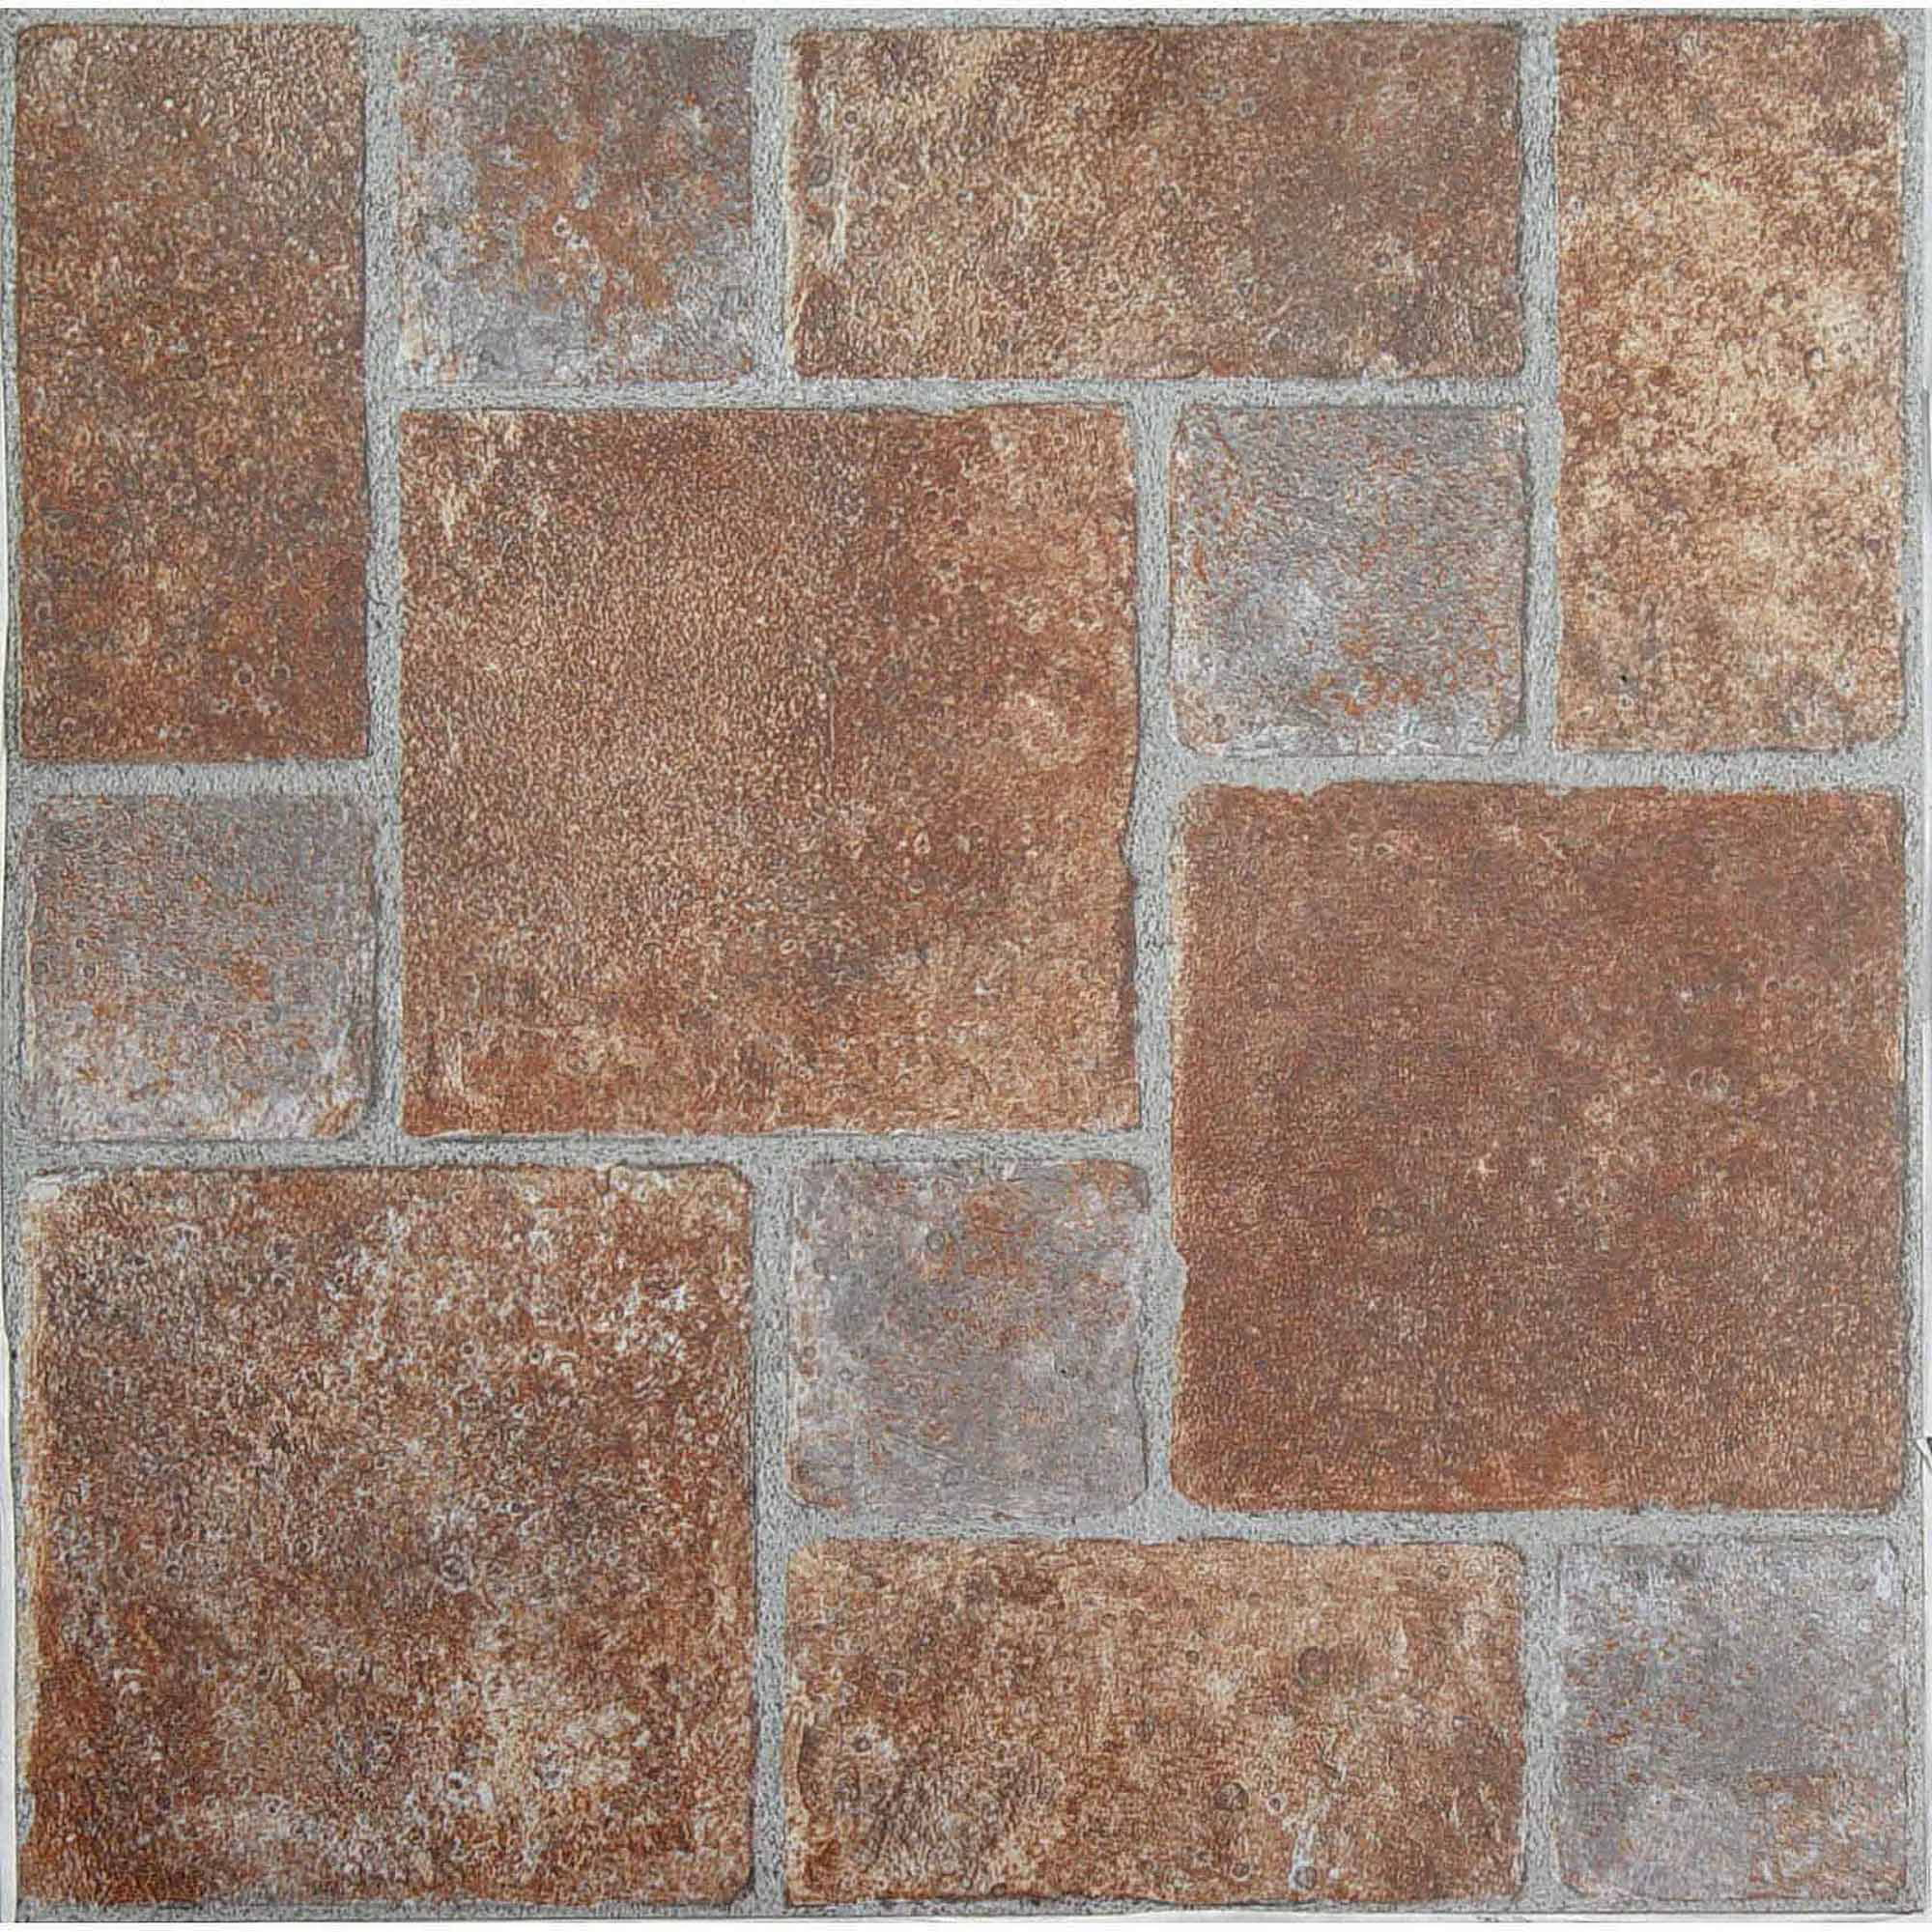 Nexus brick pavers 12x12 self adhesive vinyl floor tile 20 tiles nexus brick pavers 12x12 self adhesive vinyl floor tile 20 tiles20 sqft walmart doublecrazyfo Choice Image